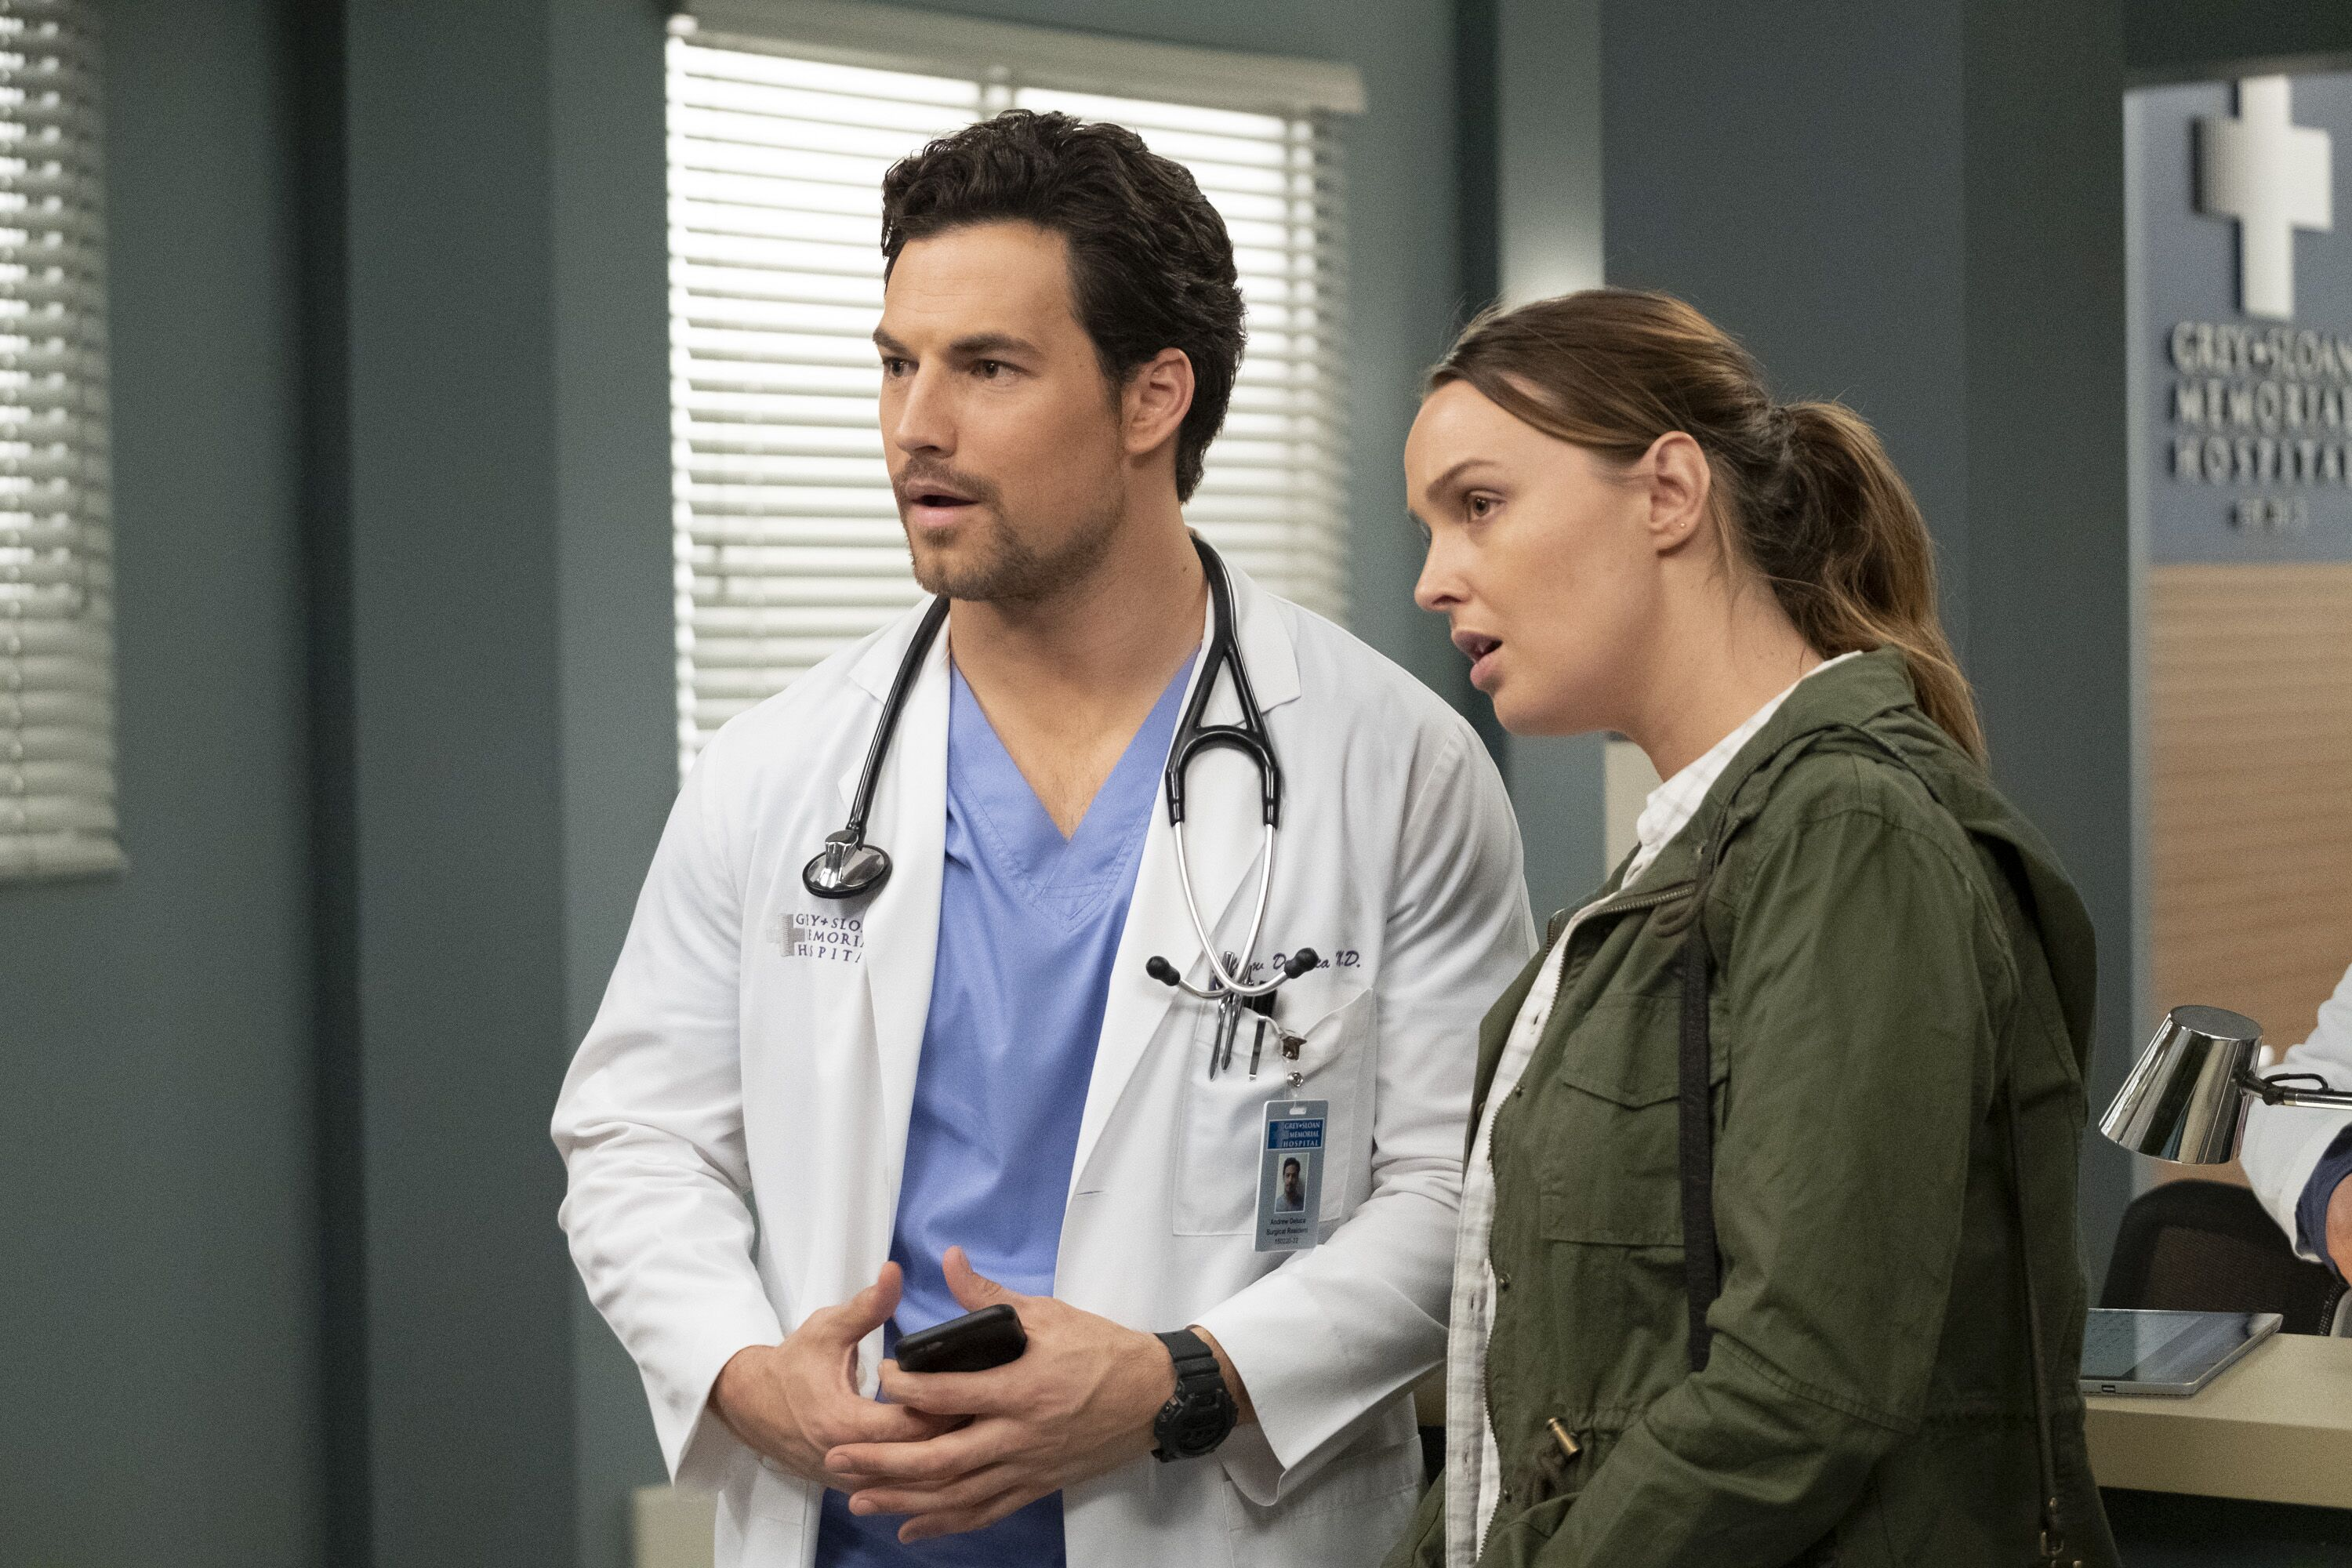 andrew greys anatomy cast - HD 2700×1800